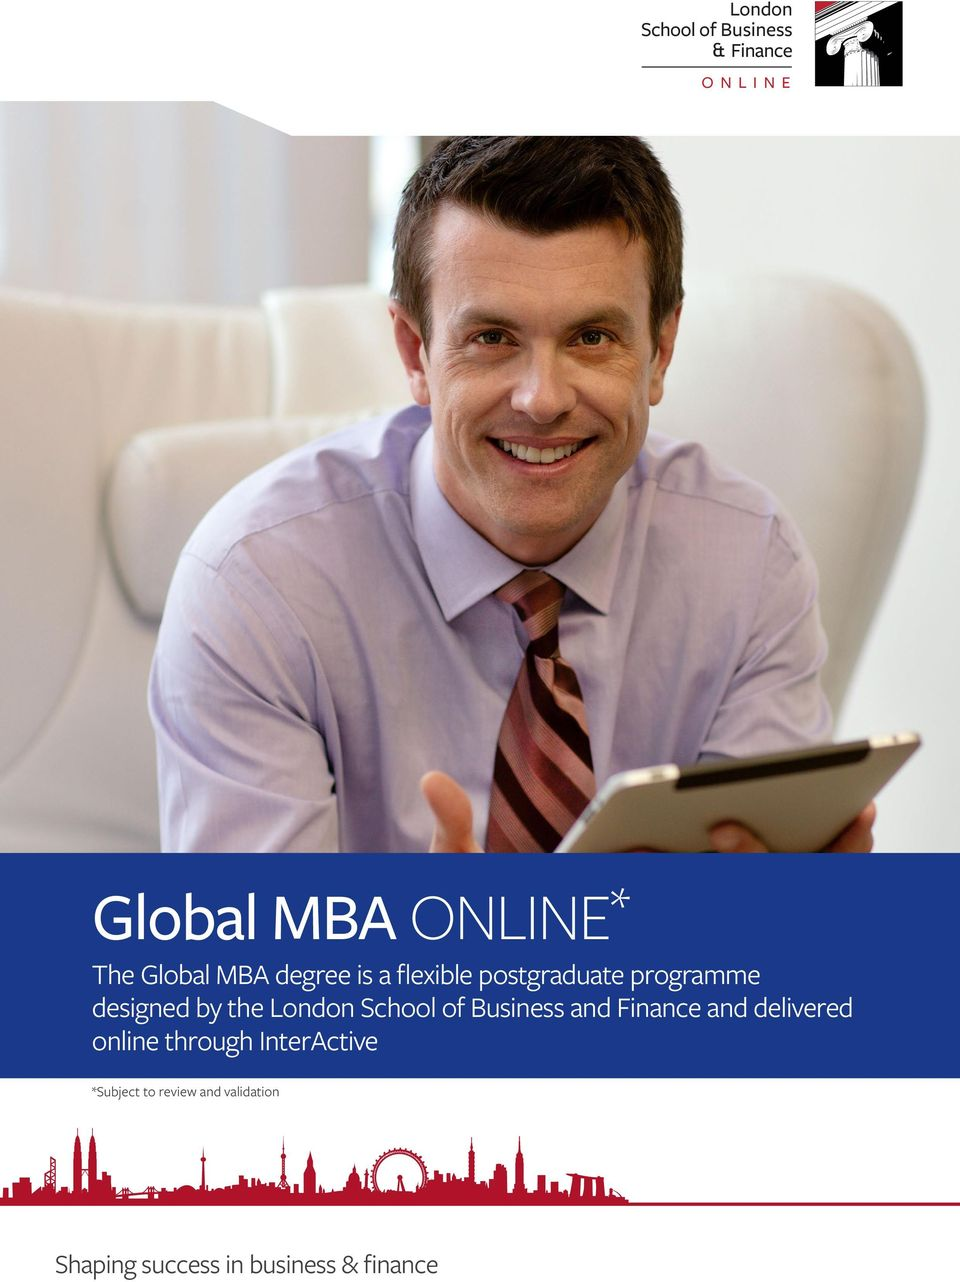 School of Business and Finance and delivered online through InterActive